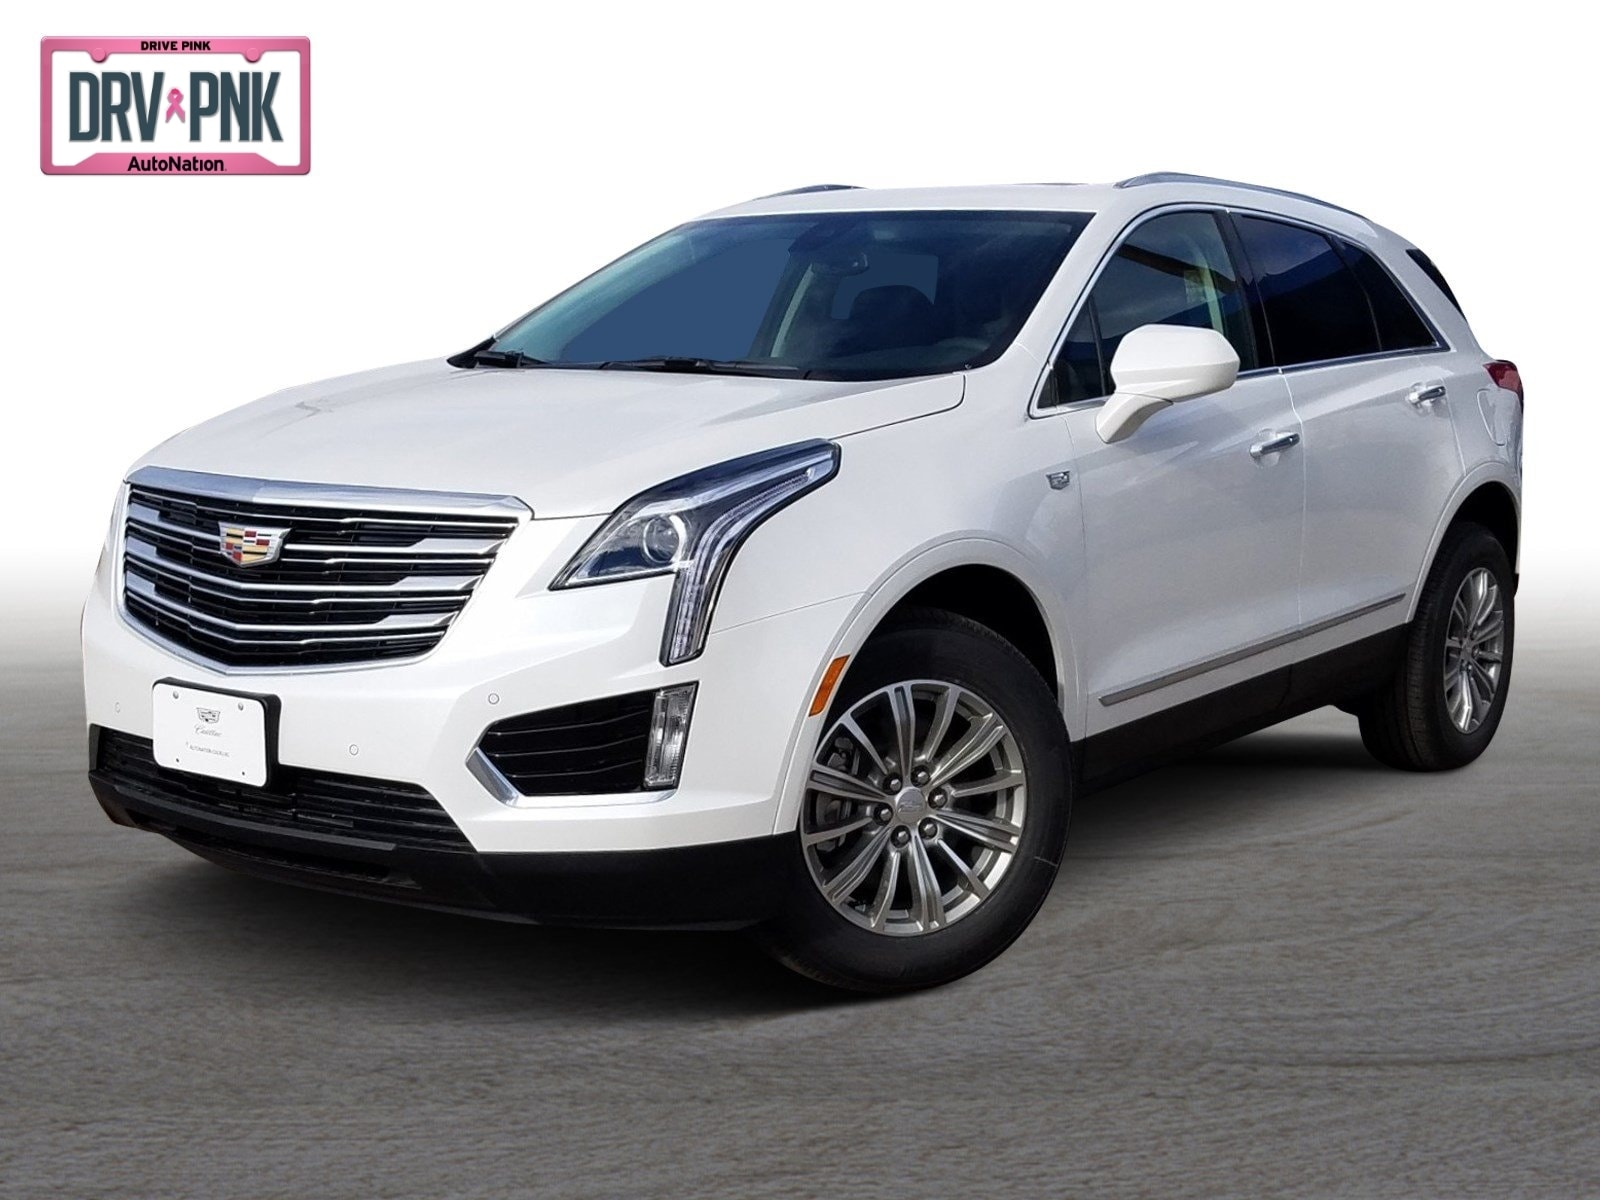 Autonation Amarillo Tx >> 1gykncrs0kz169265 2019 Cadillac Xt5 For Sale In Amarillo Tx